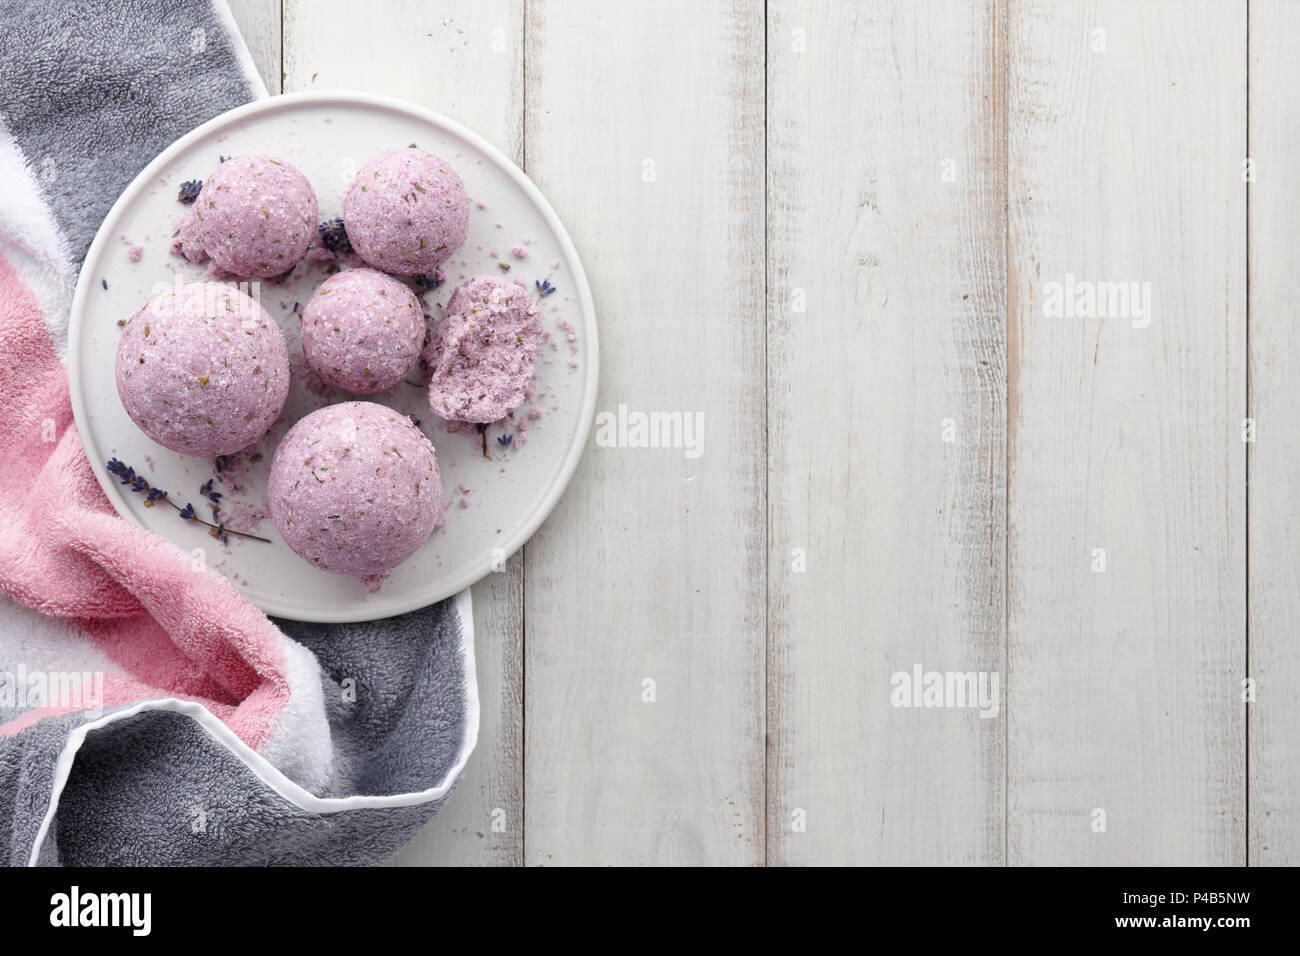 Handmade lavender bath bombs with towel on white planks - Stock Image